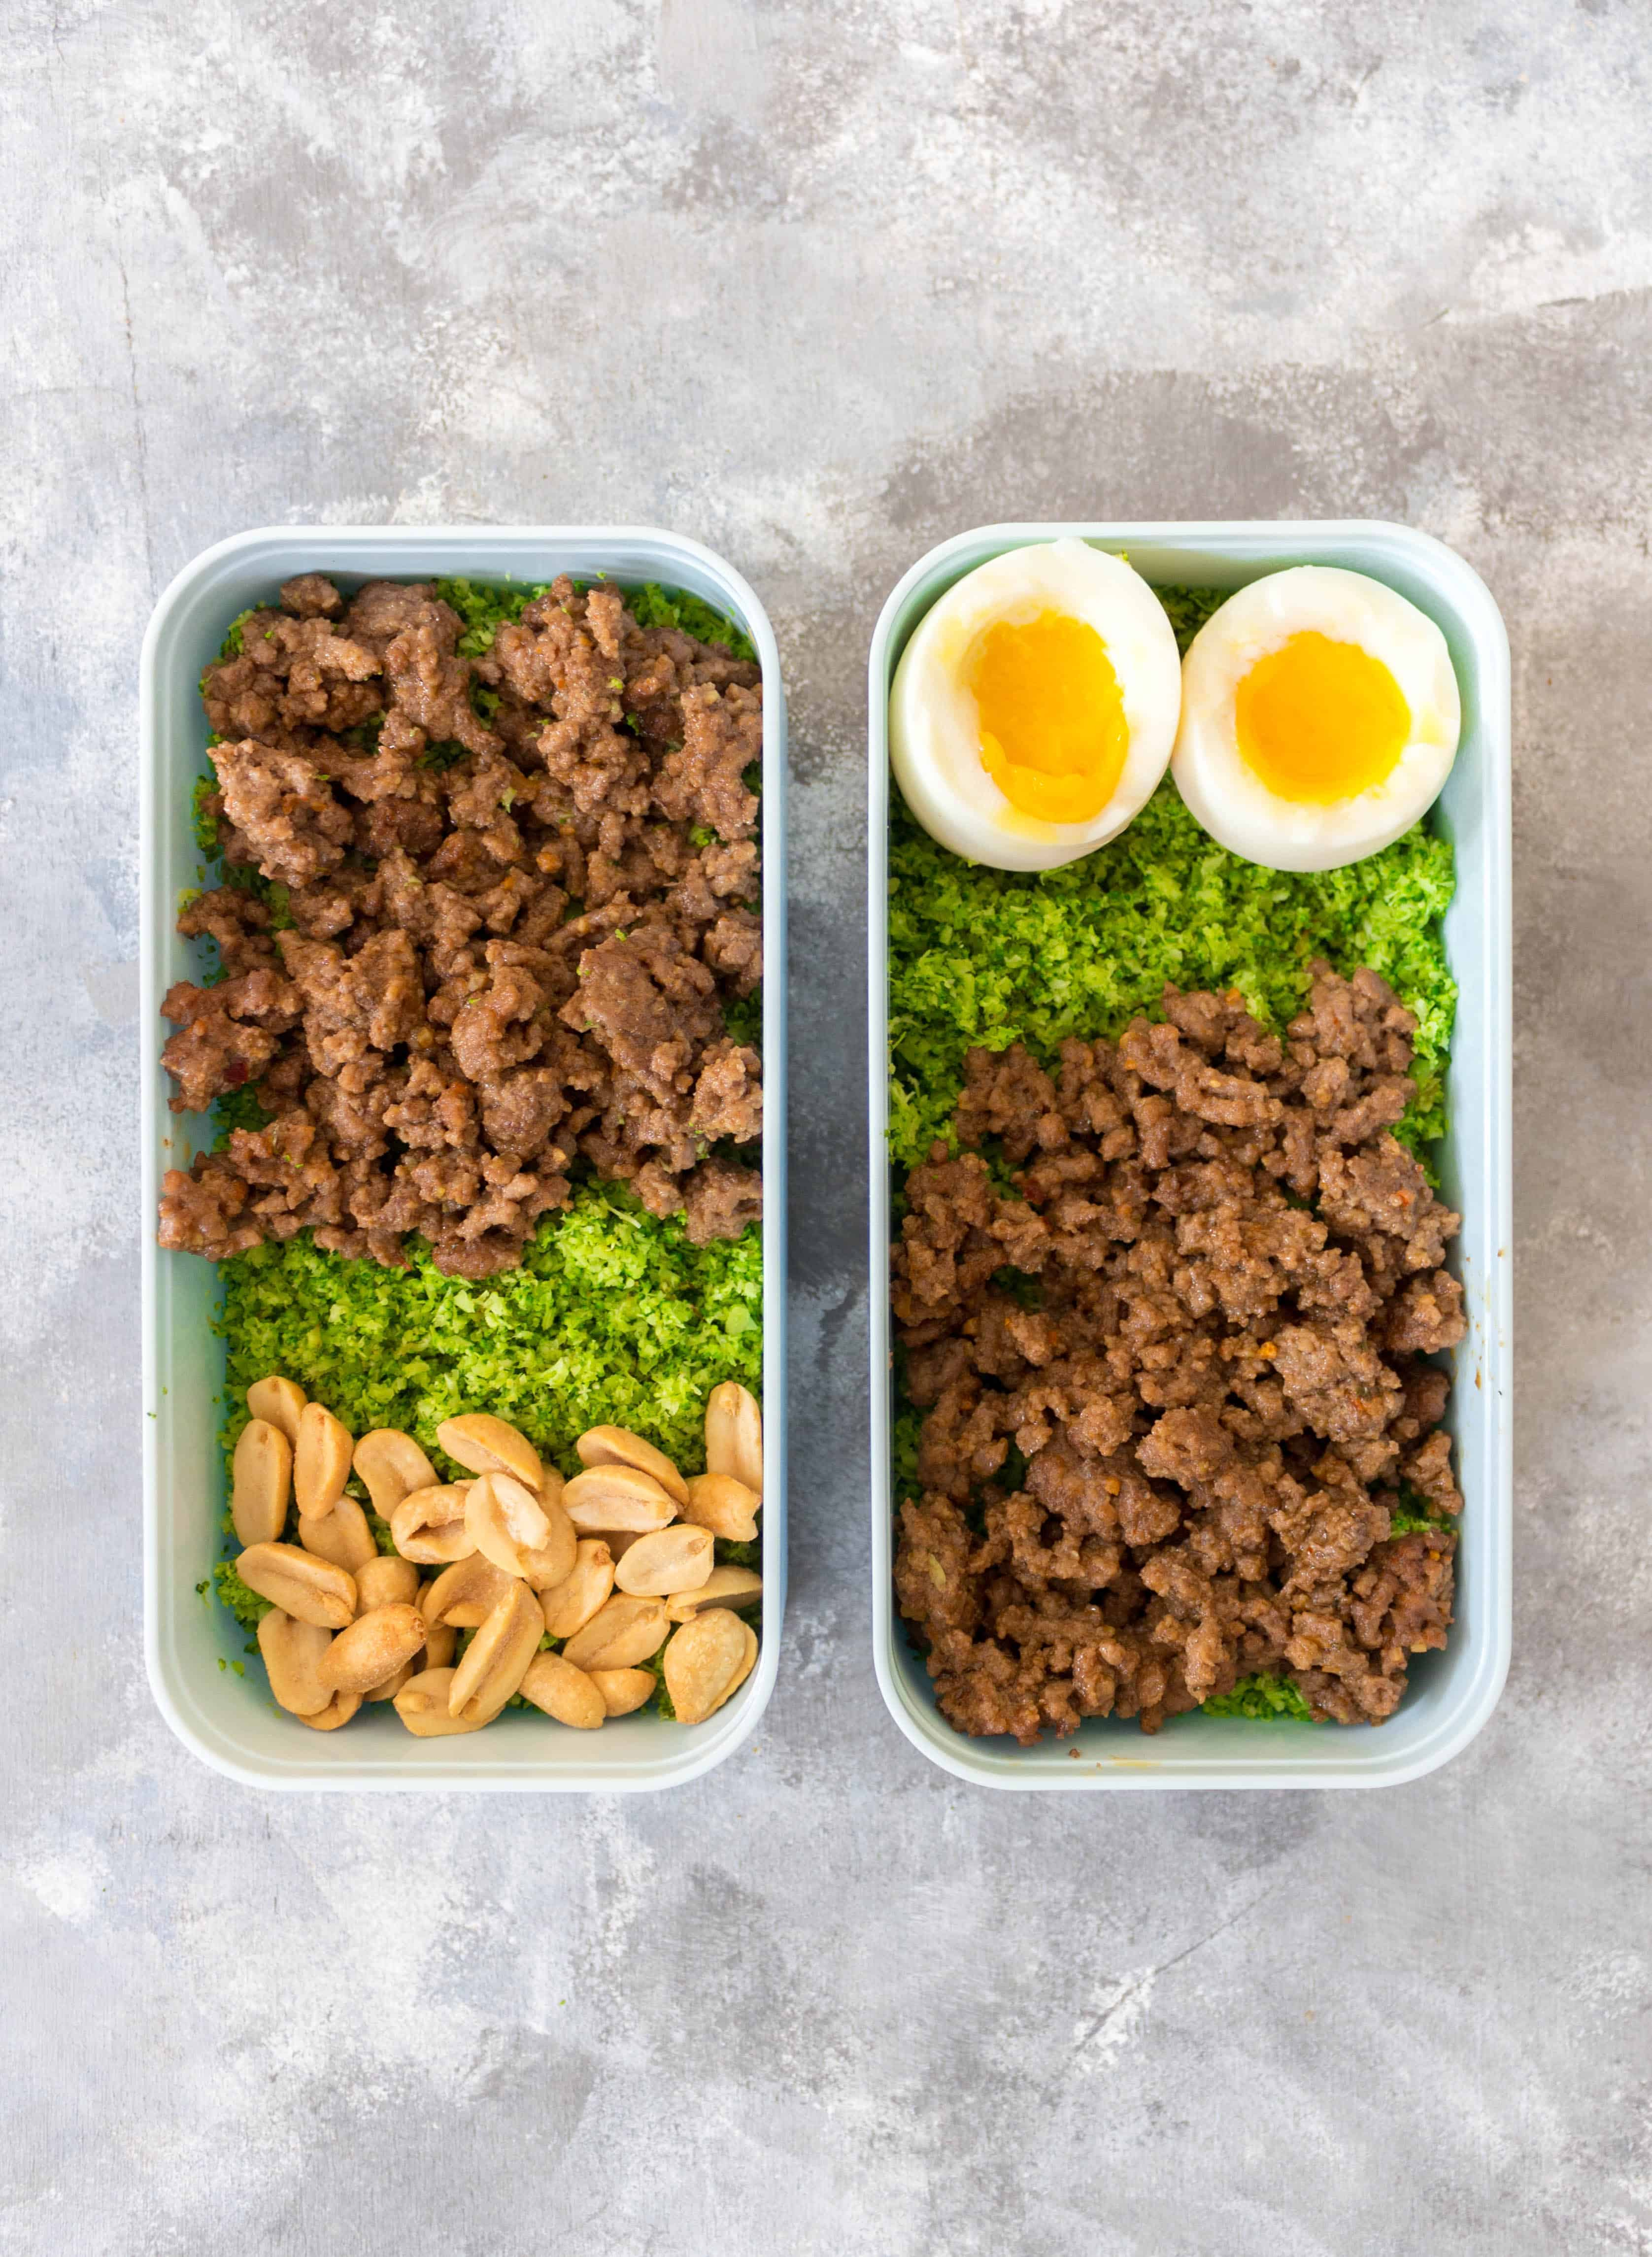 Tired of rice or cauliflower rice? Why not try broccoli rice! This delicious Spicy Peanut Beef with Broccoli Rice is a must try if you want to keep your weekly meal preps interesting! #mealprep #beefrecipes #broccoli